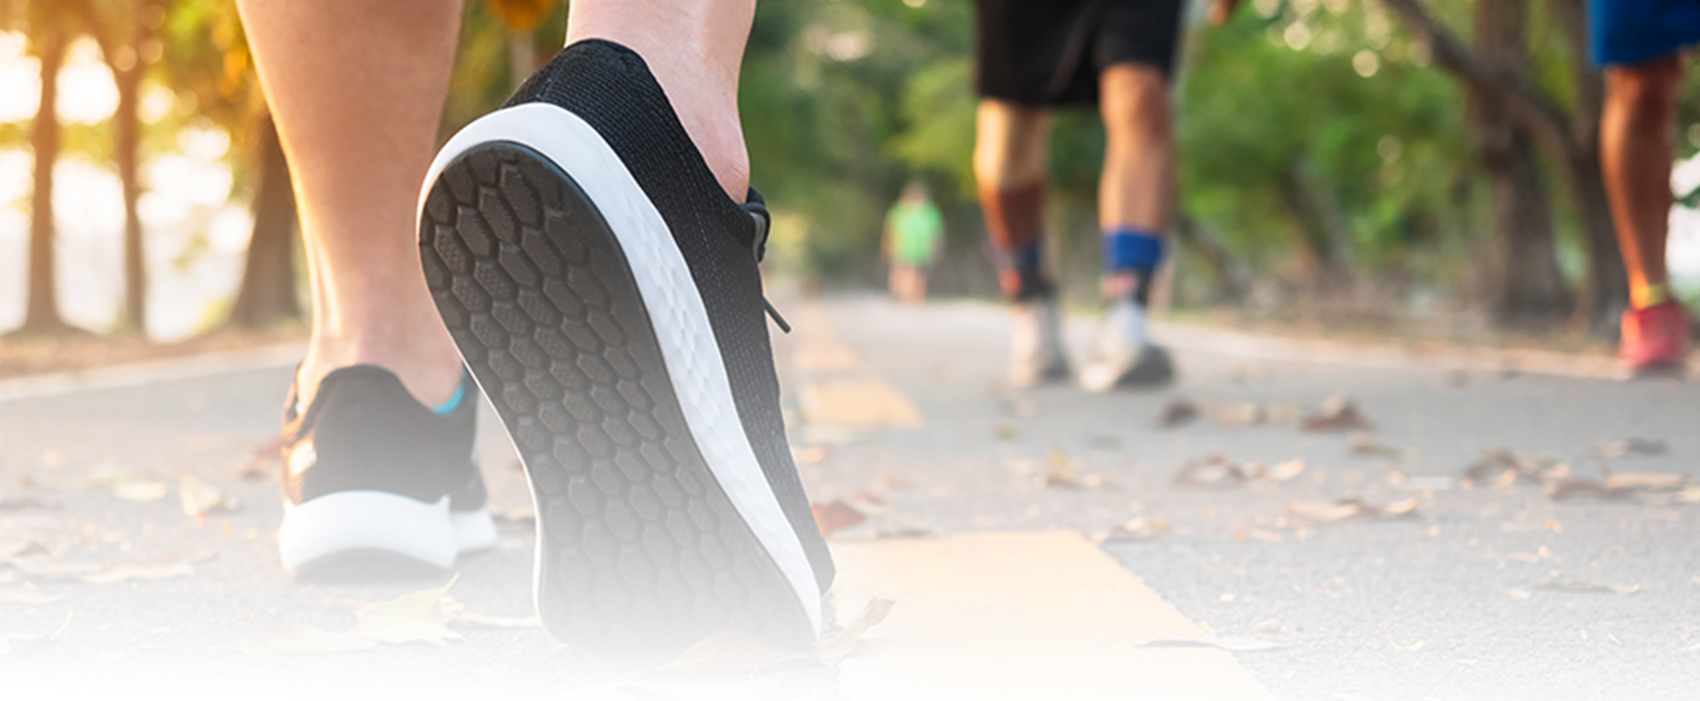 photo of feet walking and running on paved surface